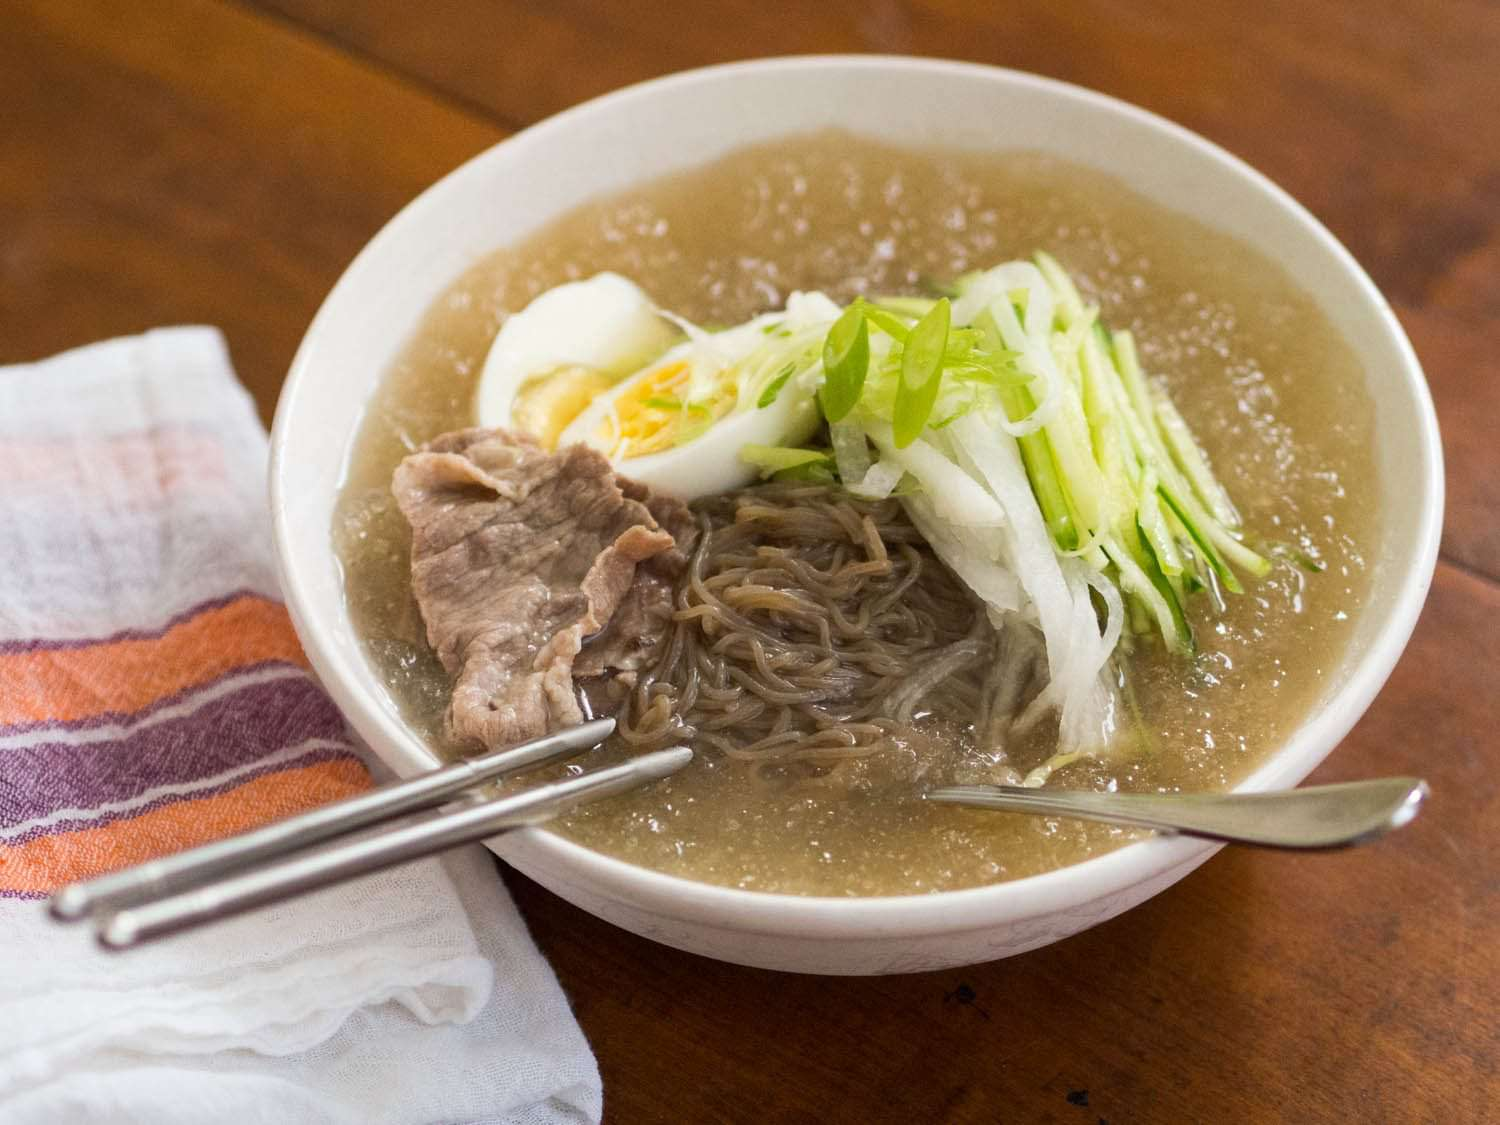 Side view of Mul Naengmyun, or cold korean noodle soup